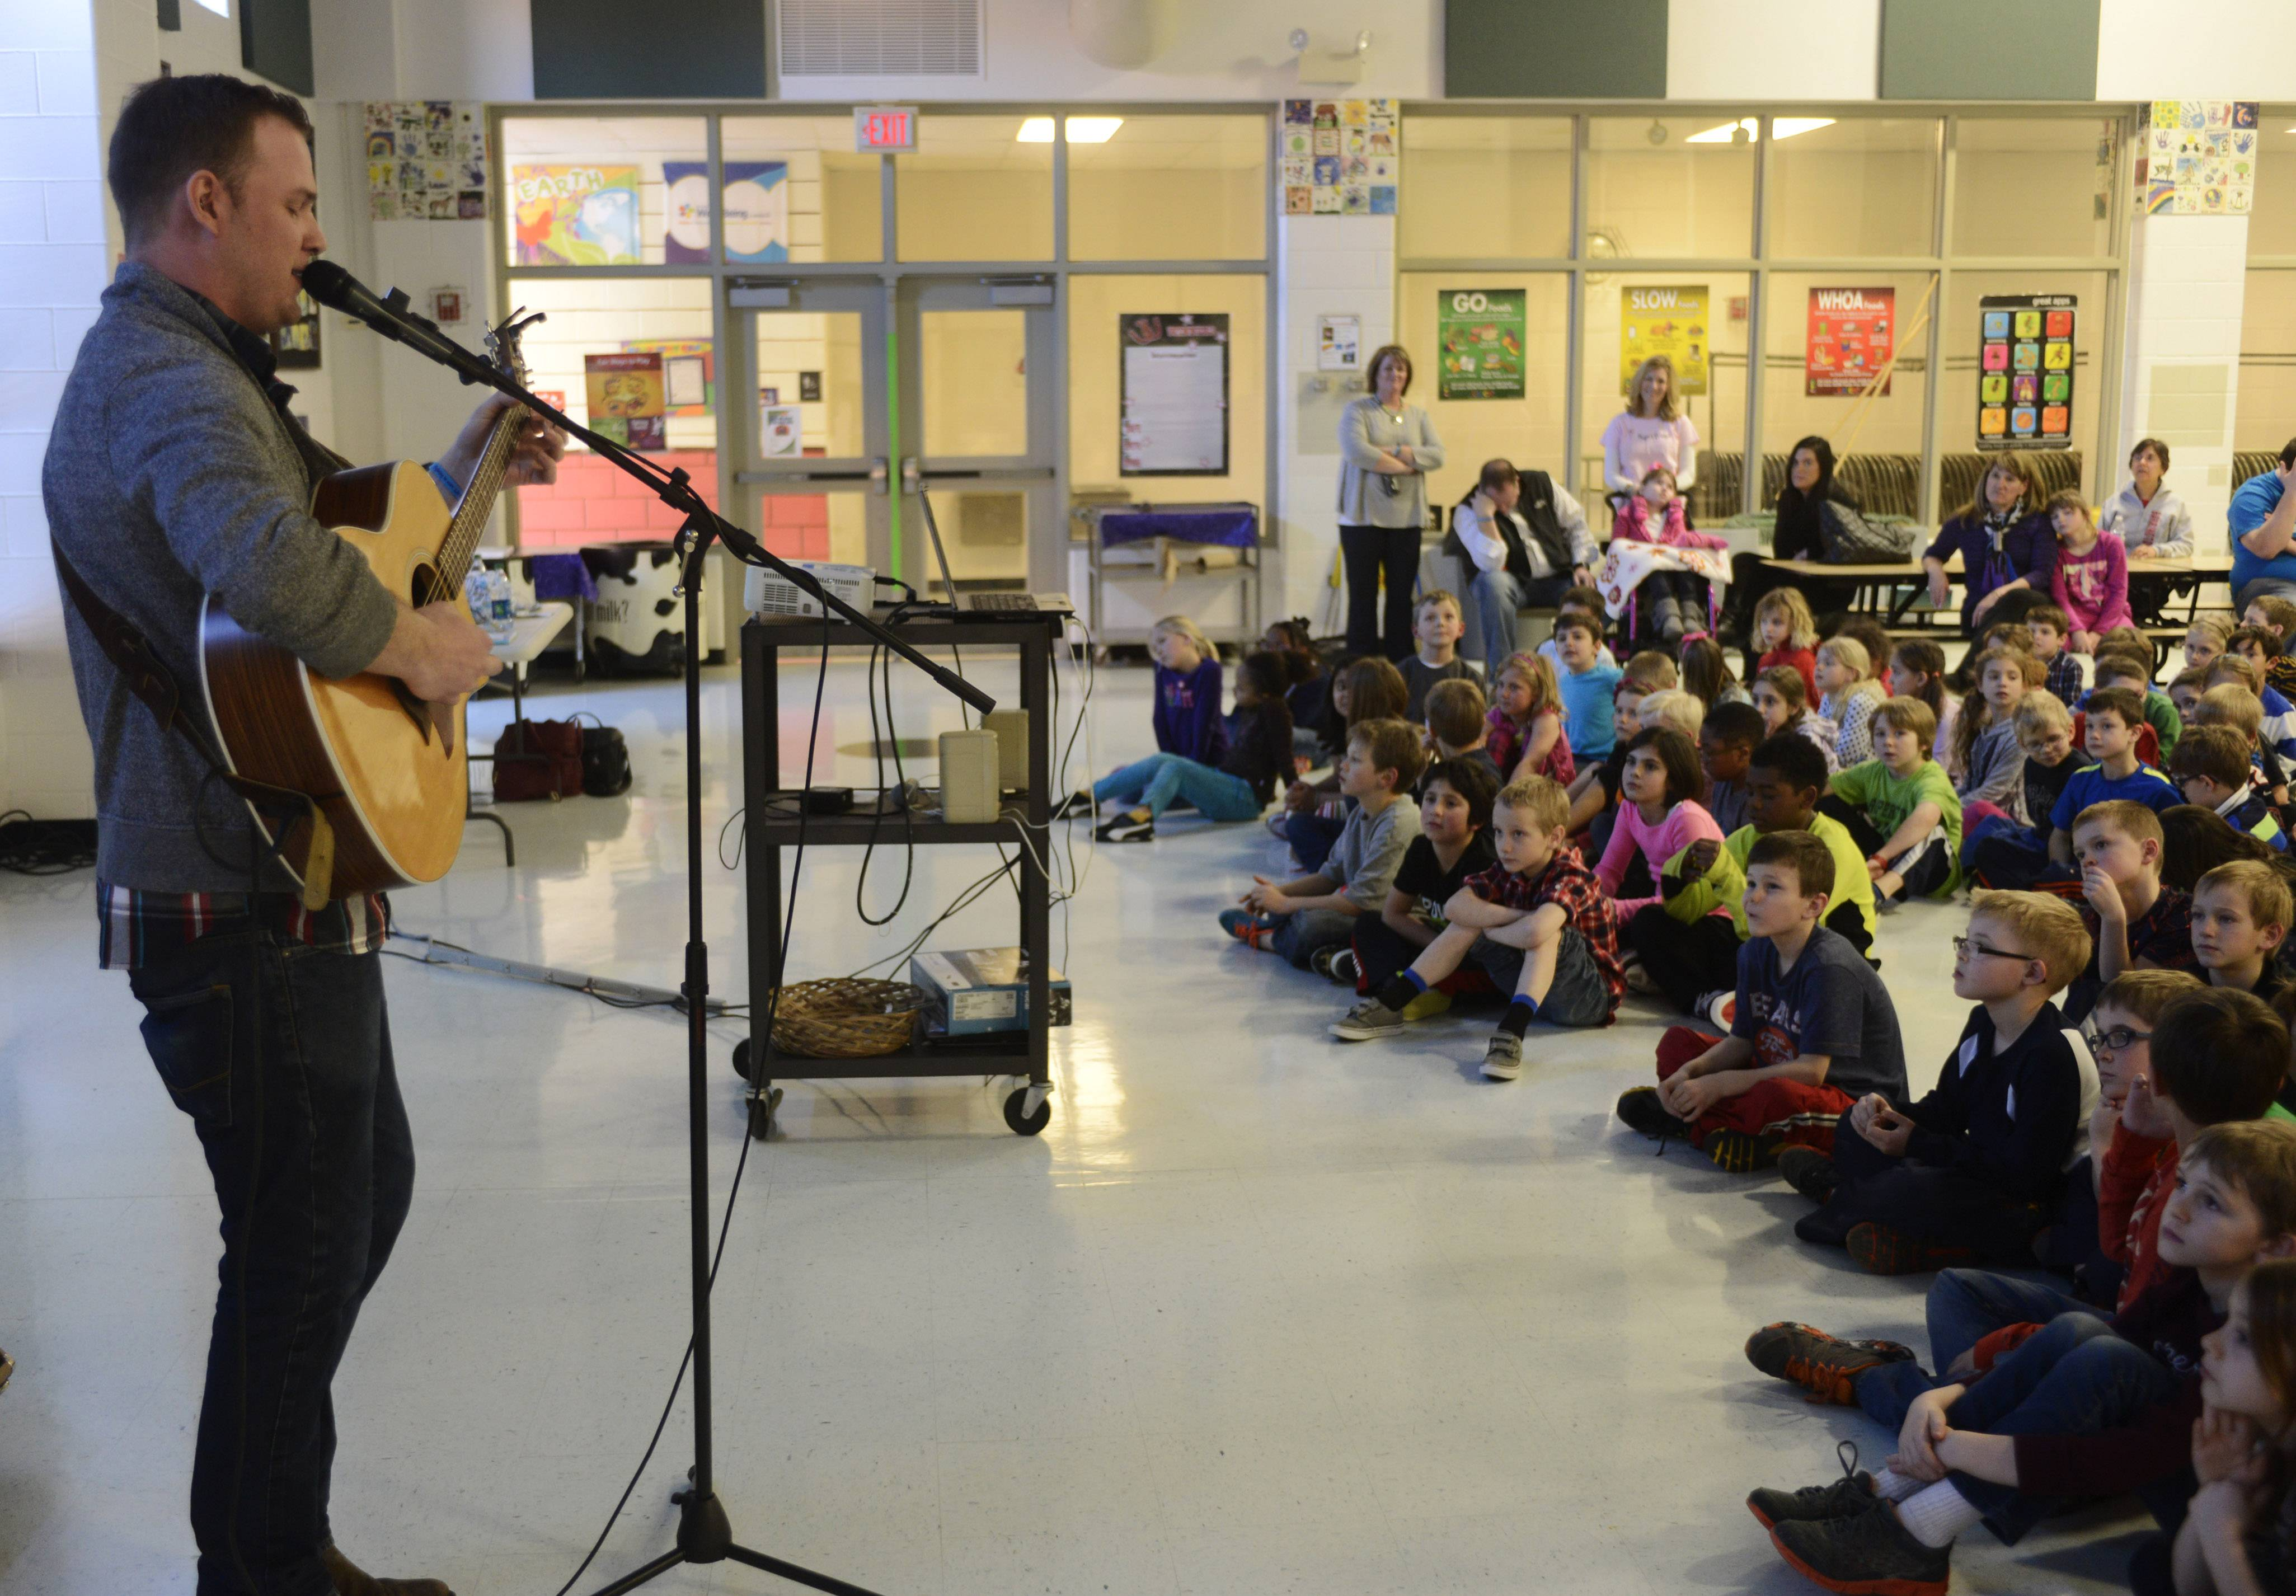 Karl Vincent Roth joined the fight against Batten disease by entertaining and enlightening students at North Barrington School.